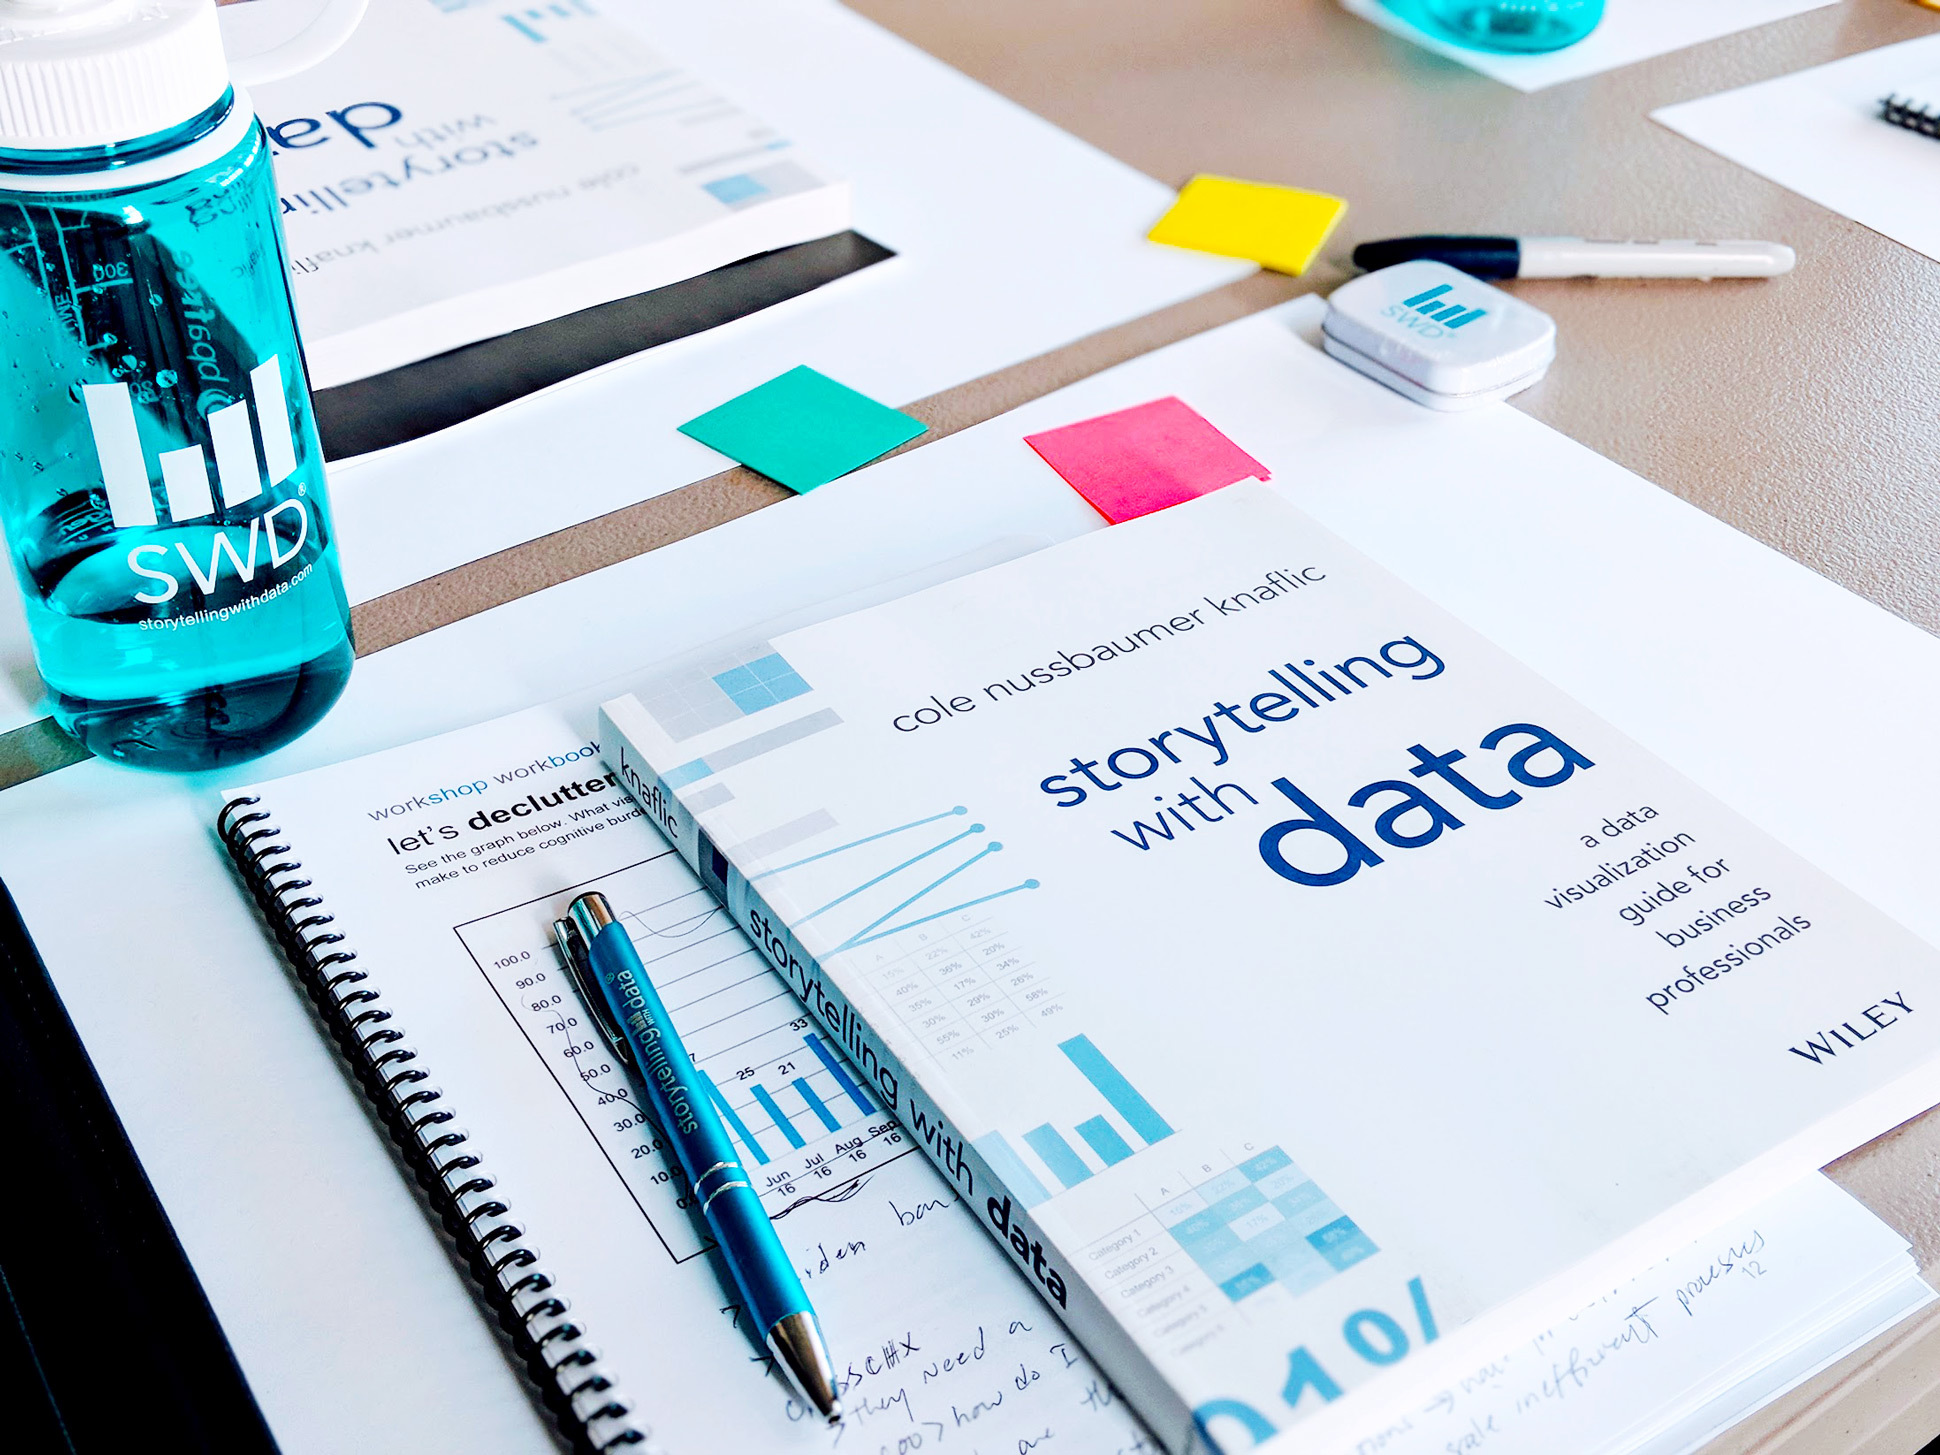 Storytelling with data book and swag.